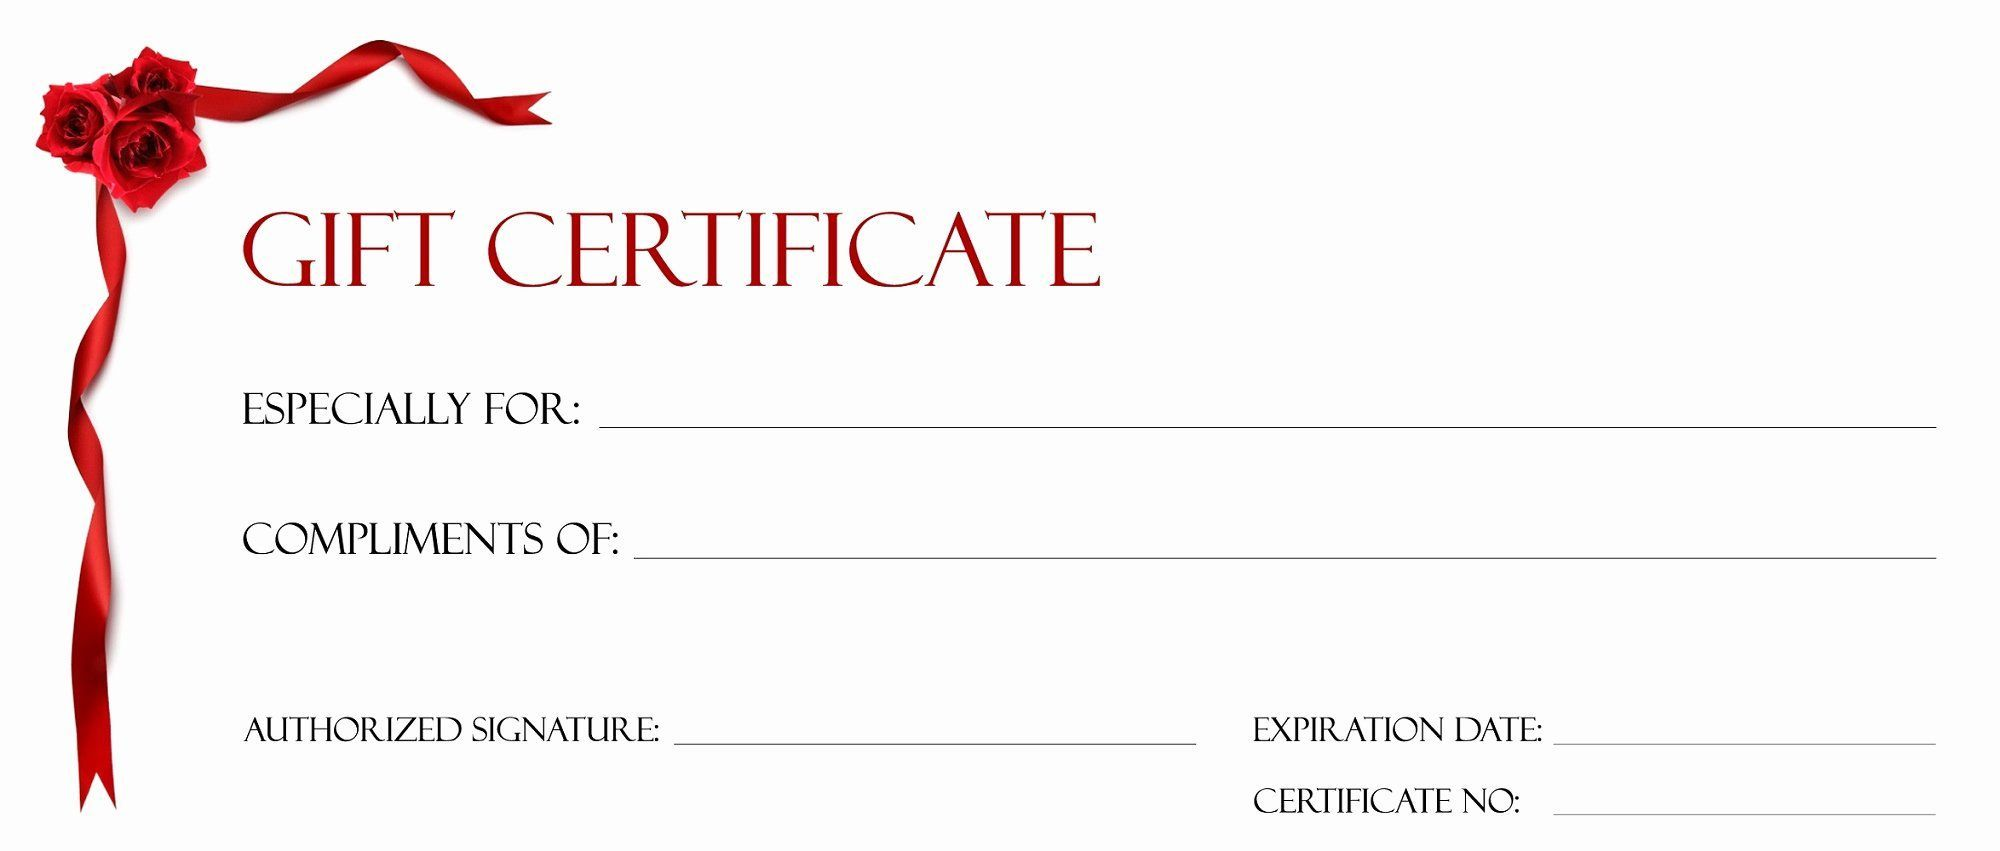 Free Gift Certificate Template Pages Printablepedia In Certifi Free Gift Certificate Template Gift Certificate Template Word Free Printable Gift Certificates